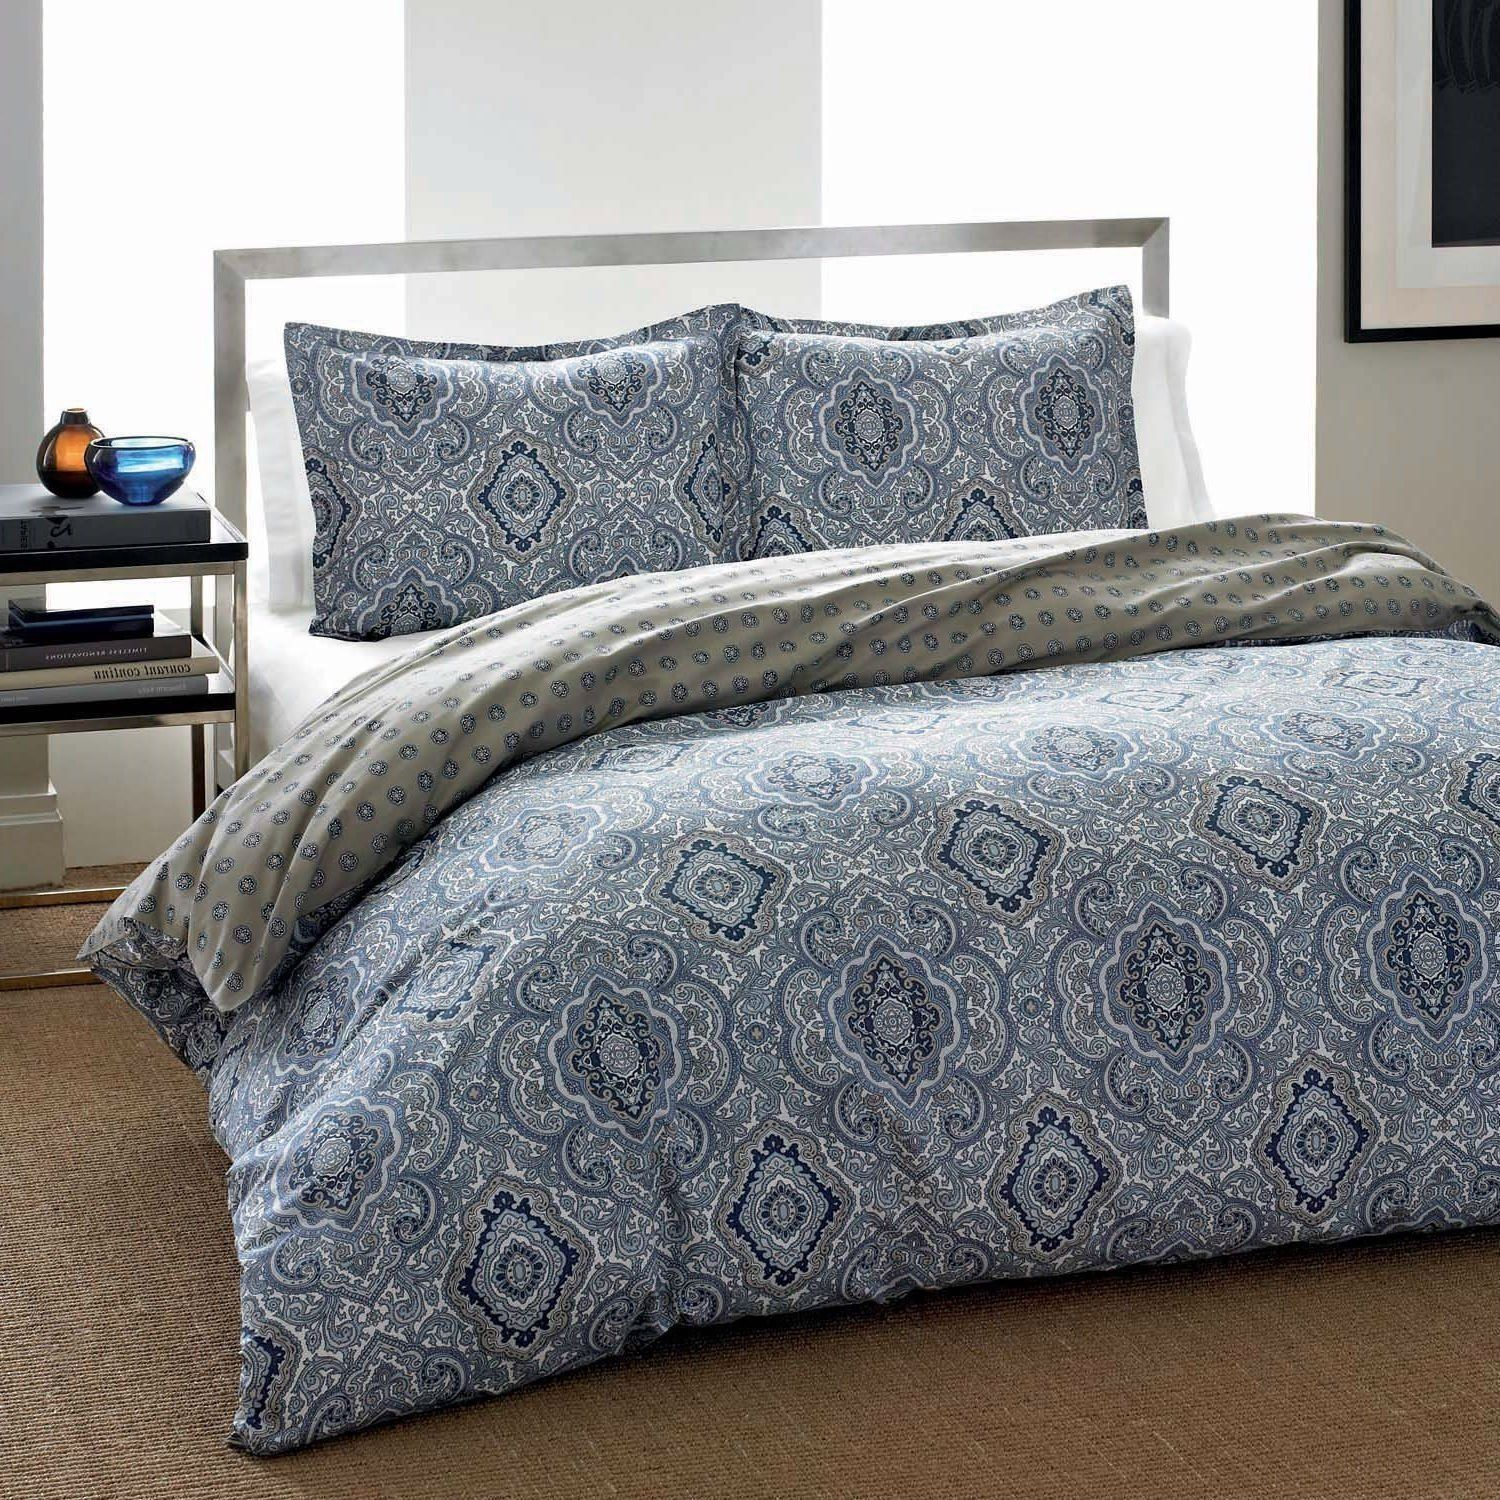 King 3 Piece Cotton Comforter Set With Blue Grey Damask Pattern Blue Comforter Sets Cotton Comforter Set Comforter Sets